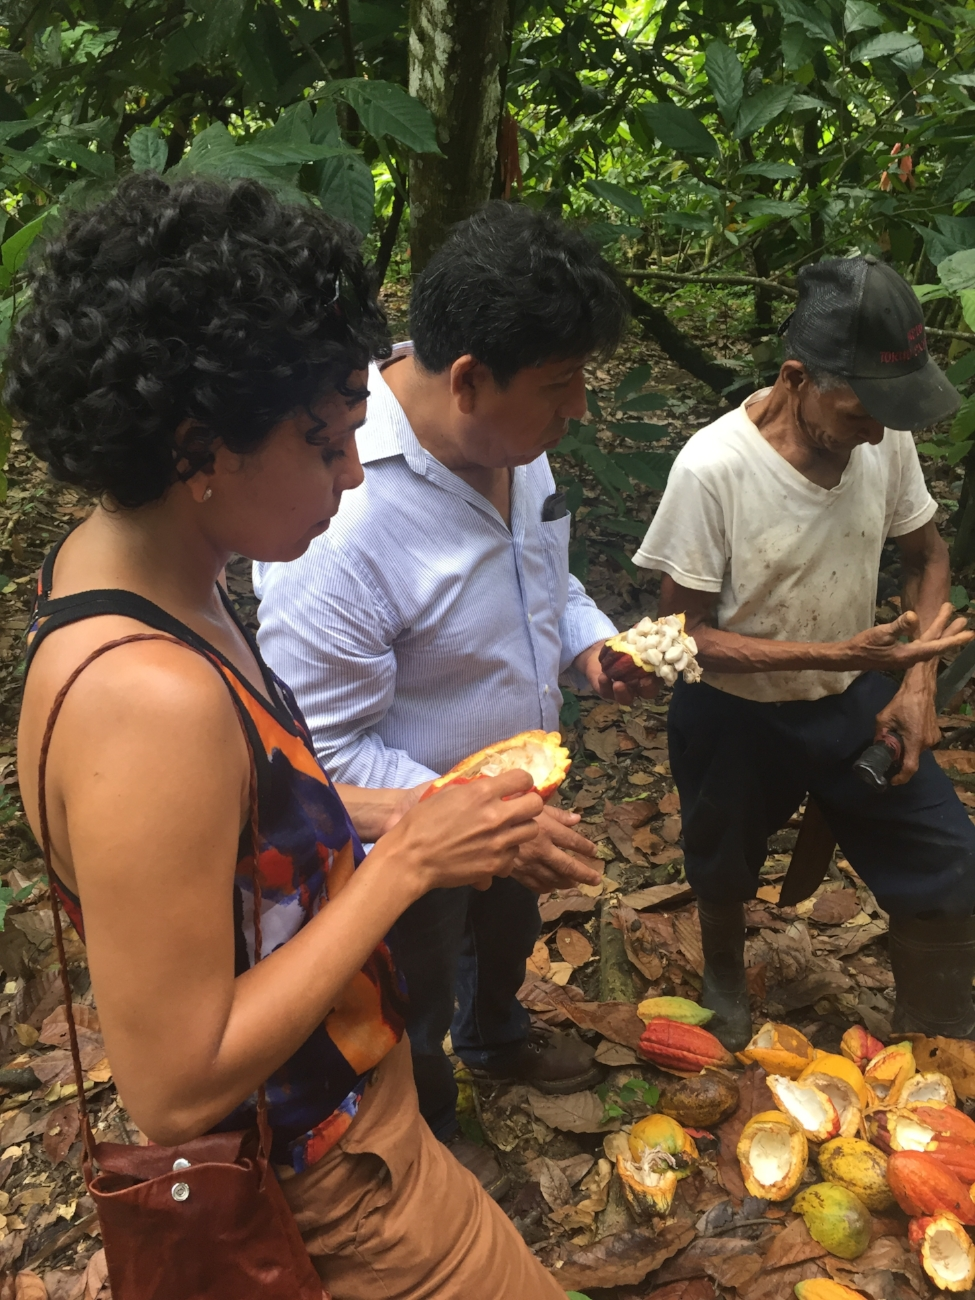 Eating Green Cacao Beans - Meeting with farmers and tasting cacao fruit and beans straight out of beautiful pods just harvested with Gualberto at Öko-Caribe farm near San Francisco de Marcolis, Dominican Republic